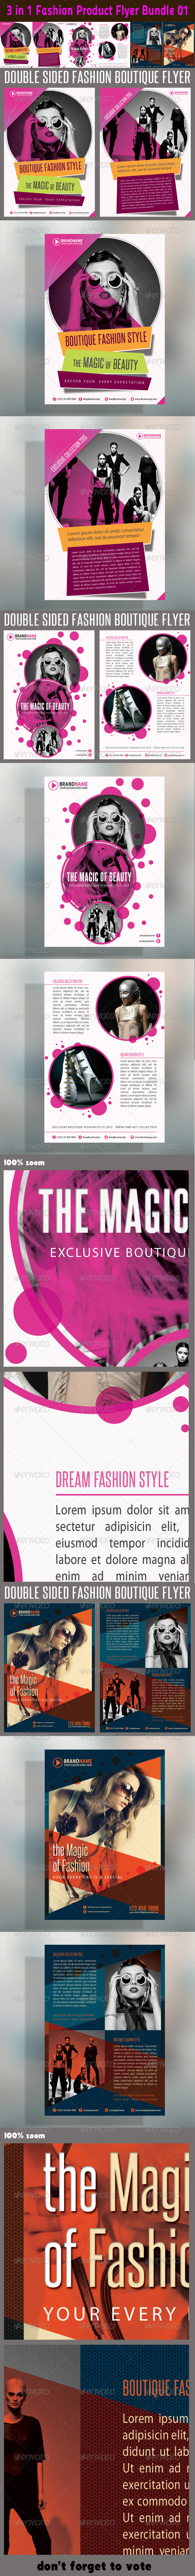 3 in 1 Fashion Product Flyer Bundle 01 - Events Flyers